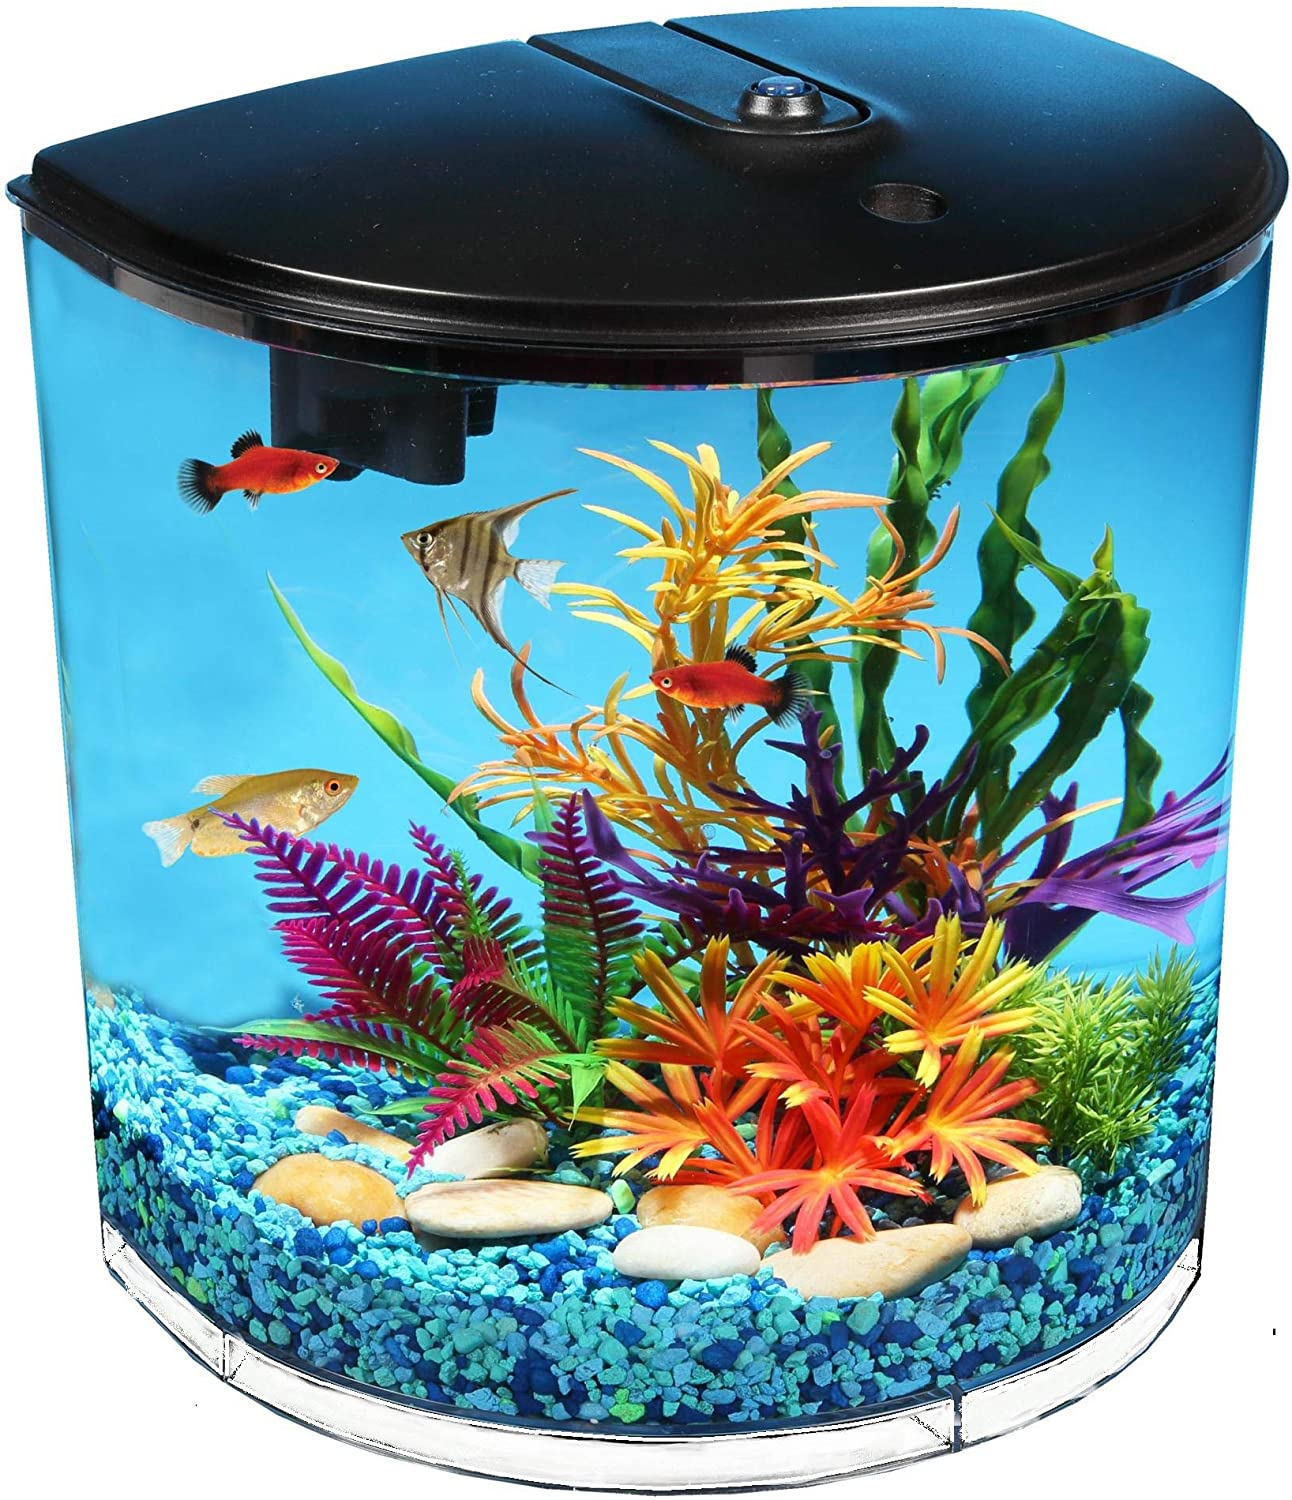 Koller Products AquaView 3.5 gallon Fish Tank with Power Filter & LED Lighting (AQ35000BLK)